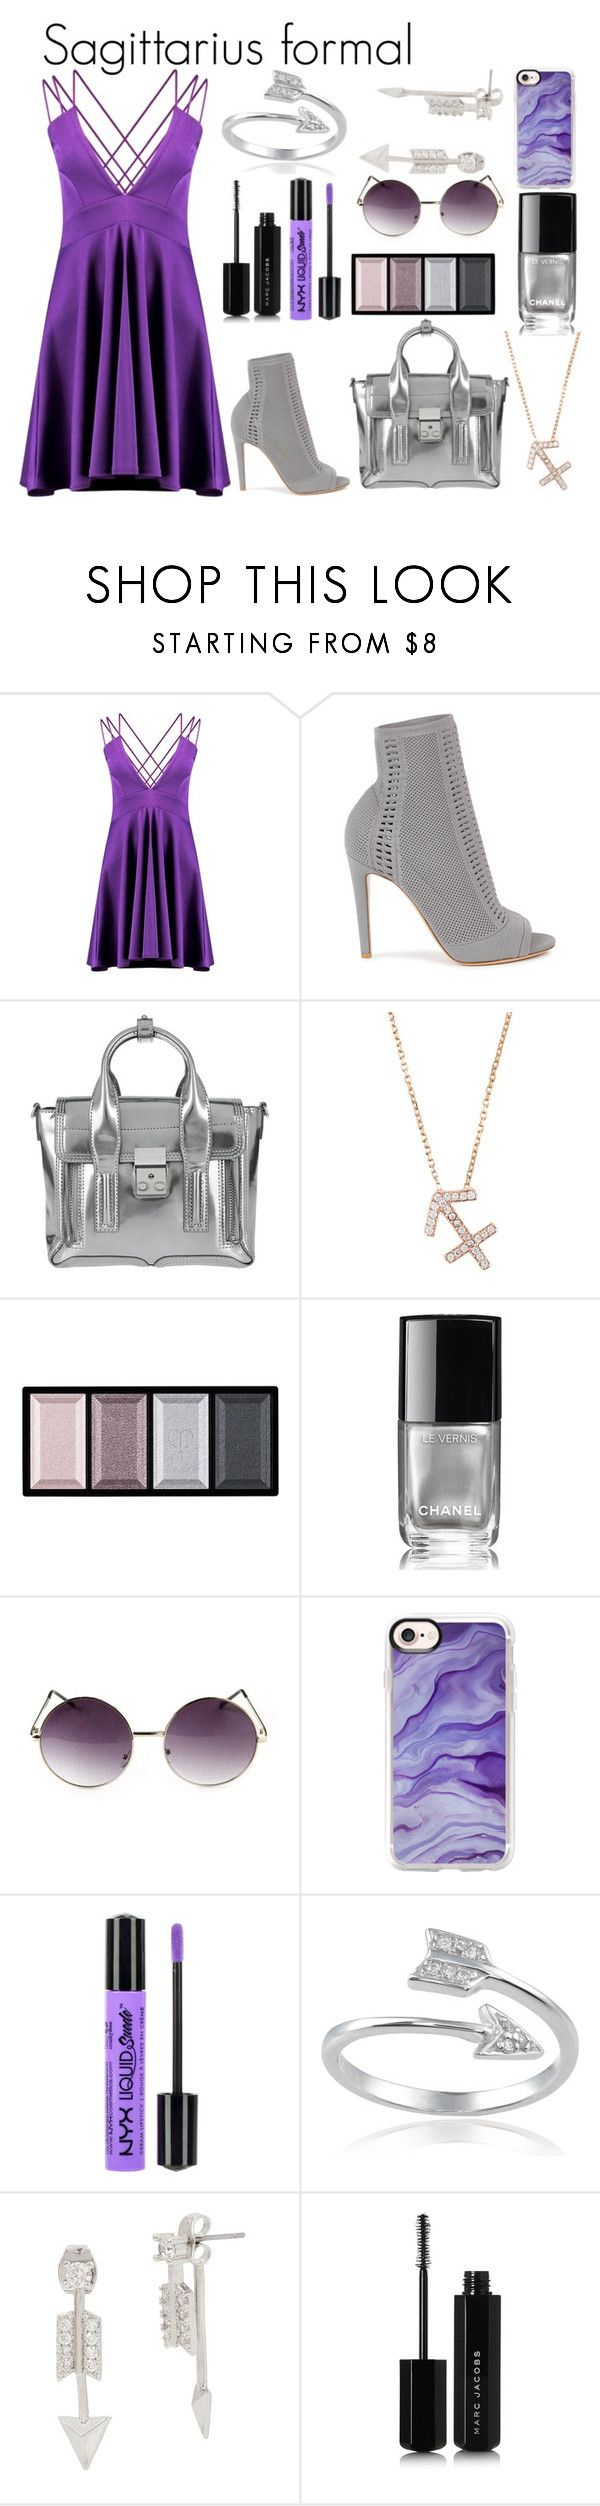 """""""Sagittarius formal"""" by lottie2004 ❤ liked on Polyvore featuring Boohoo, Gianvito Rossi, 3.1 Phillip Lim, Latelita, Clé de Peau Beauté, Chanel, Casetify, NYX, Journee Collection and Betsey Johnson"""